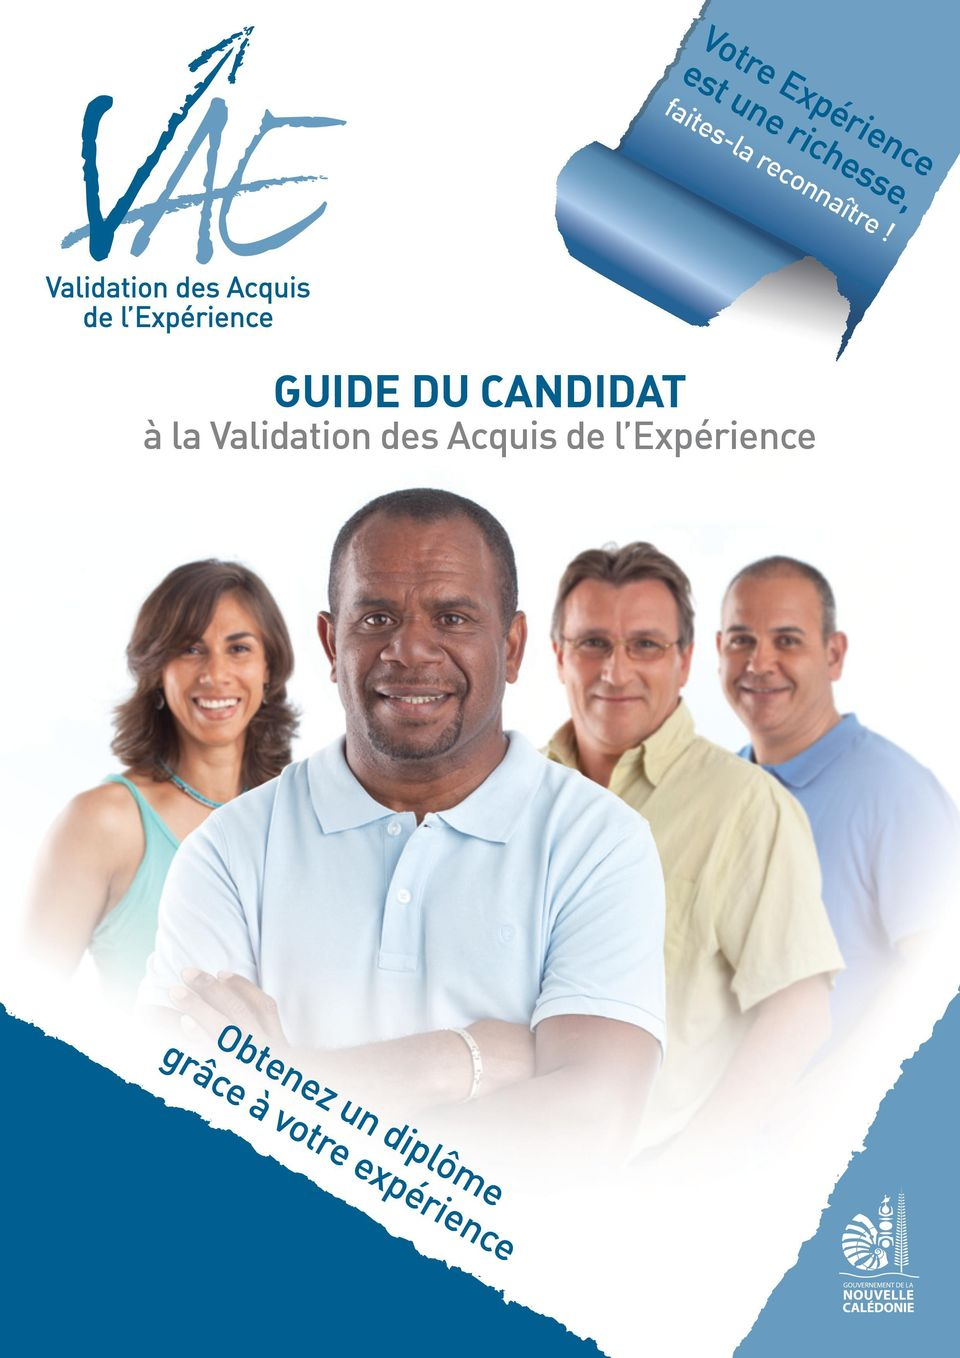 Guide du candidat à la Validation des